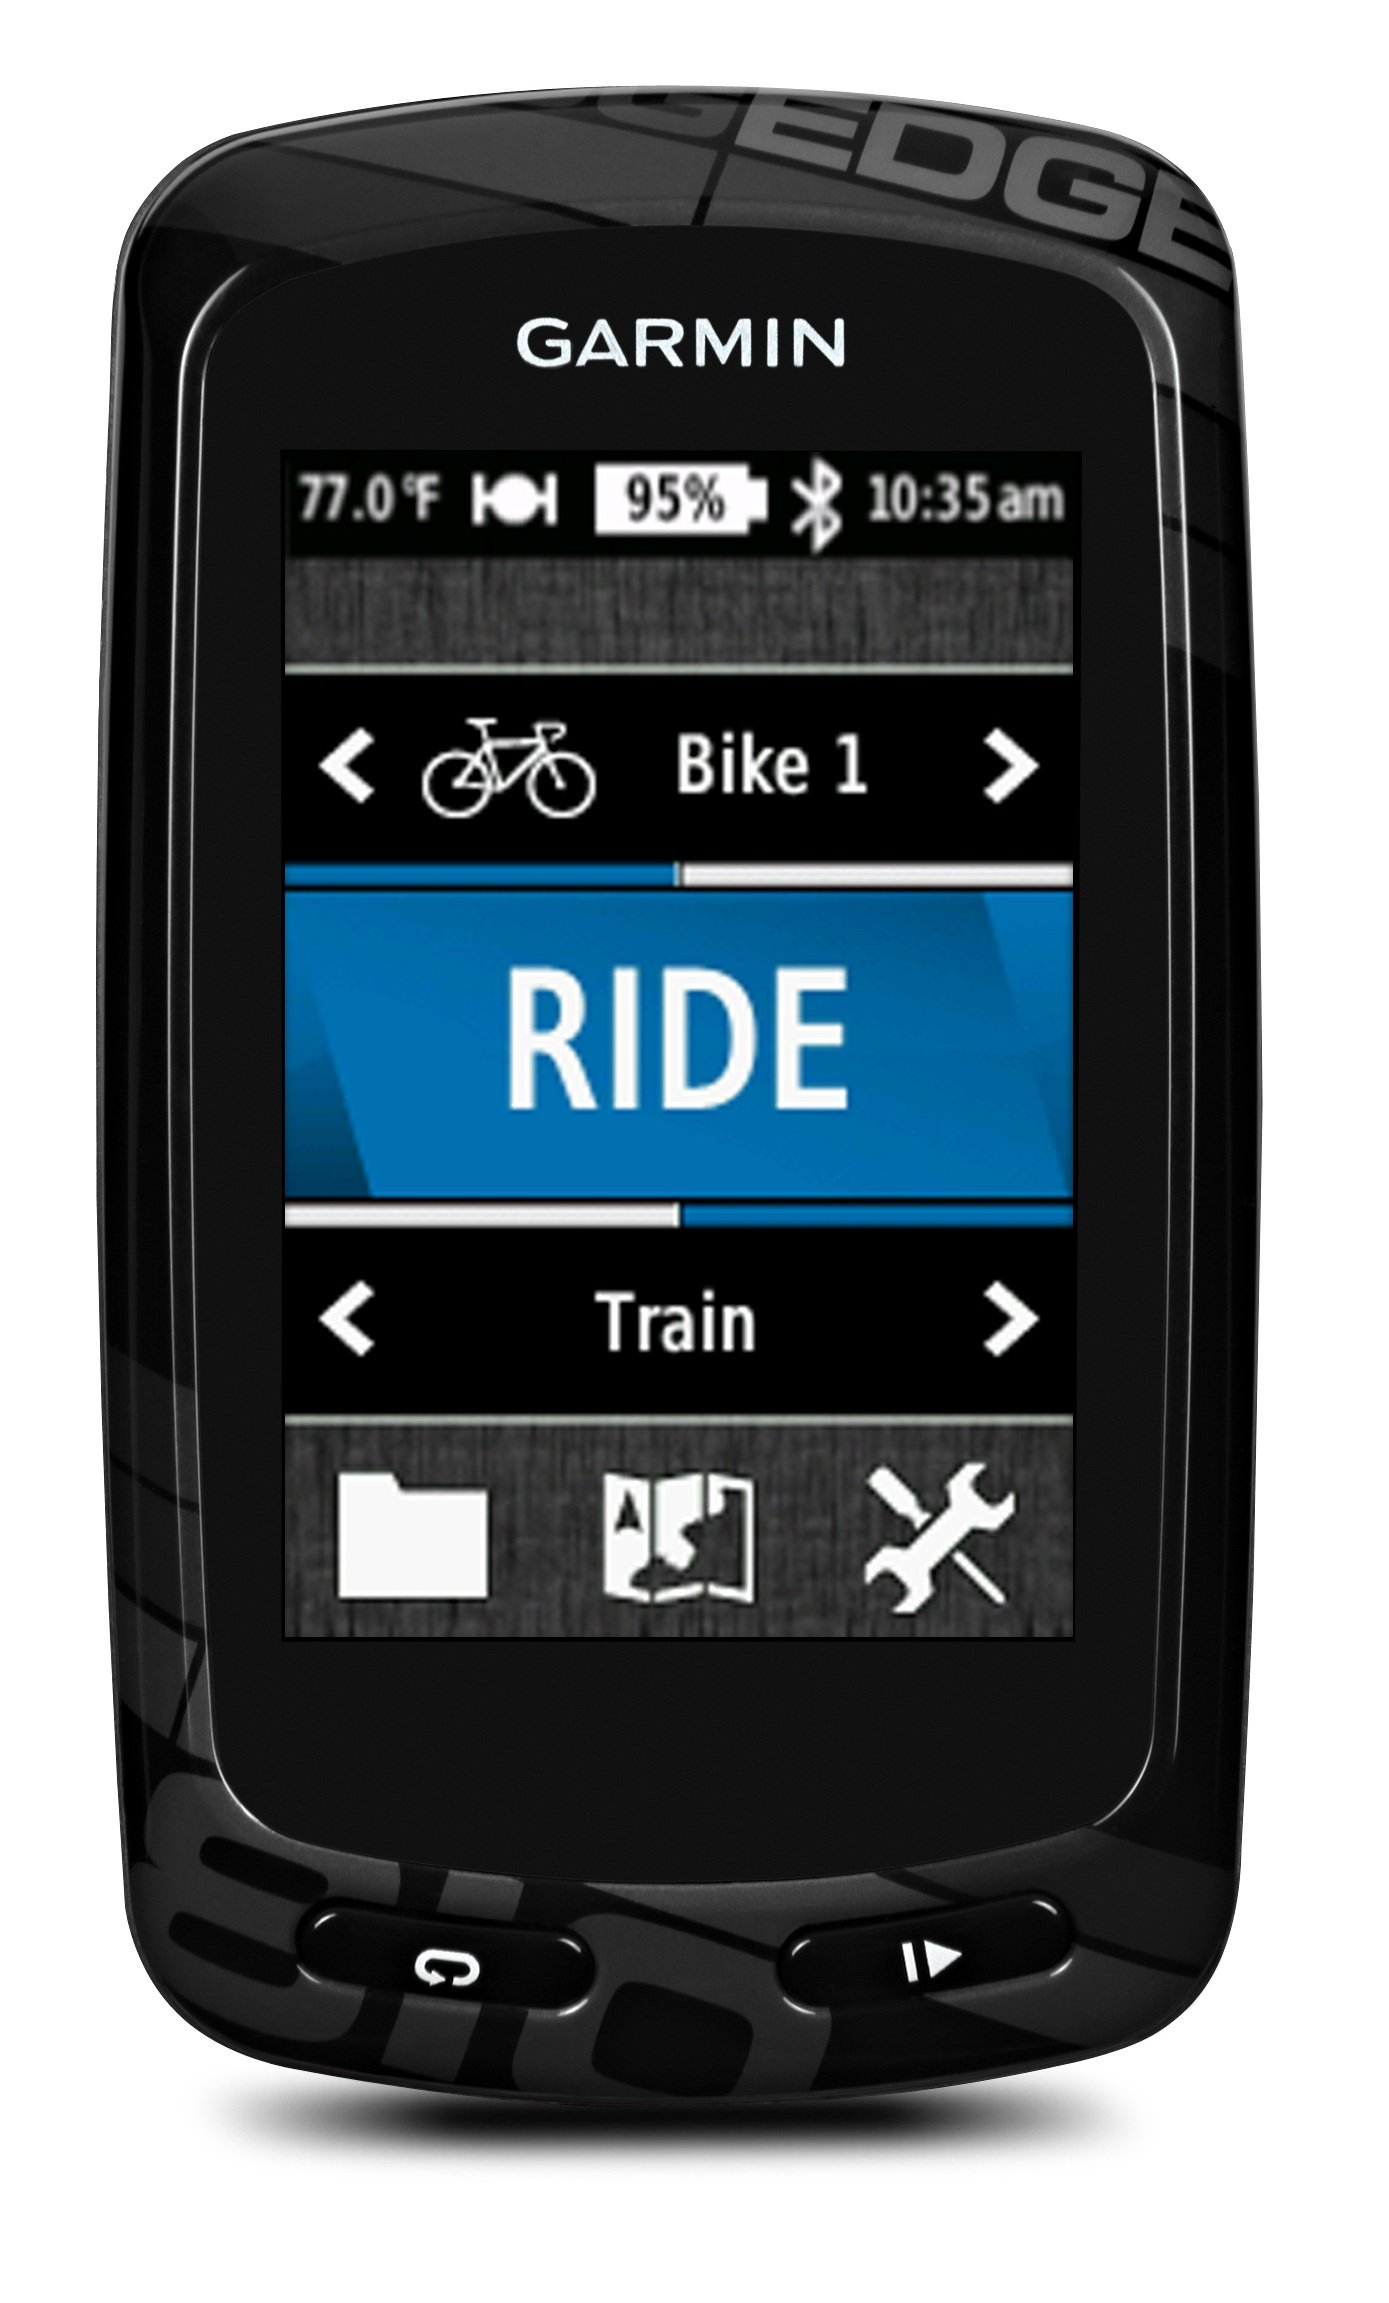 Garmin Edge 810 GPS Bike Computer with Heart Rate Monitor, Speed/Cadence Sensor and City Navigator Street Maps For Europe - Black product image